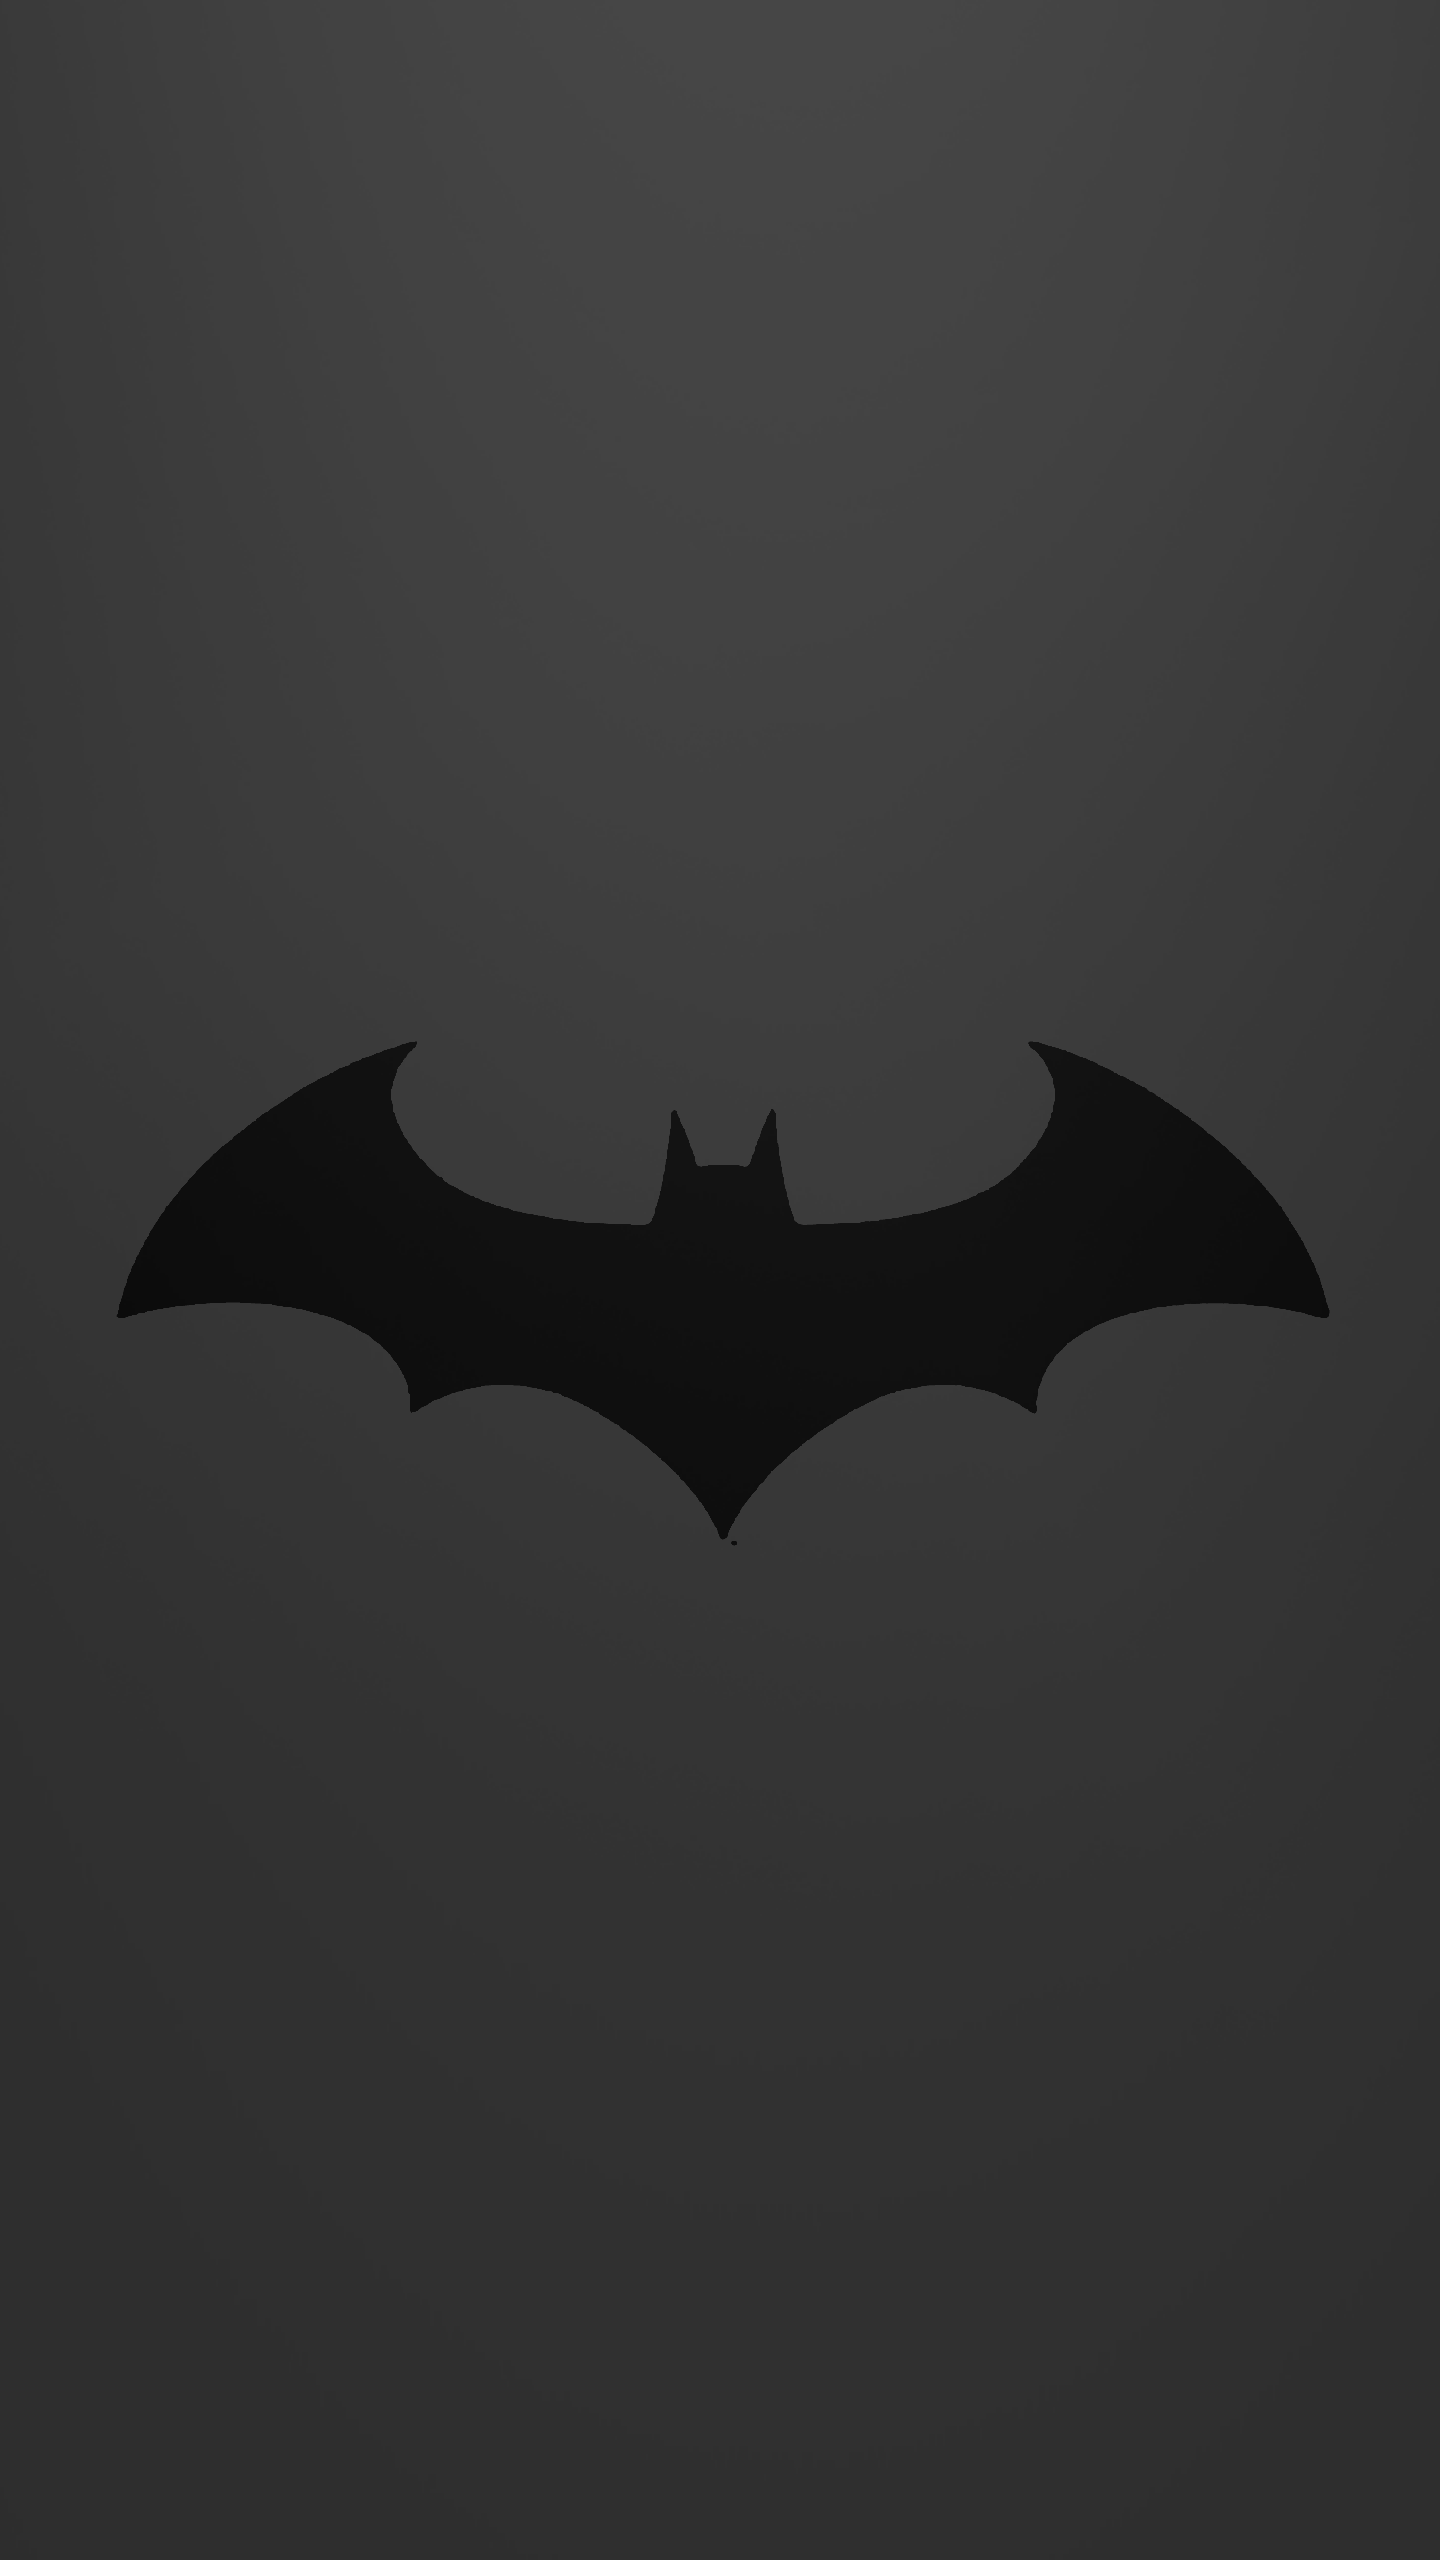 Simple Minimal Batman Wallpaper Dump